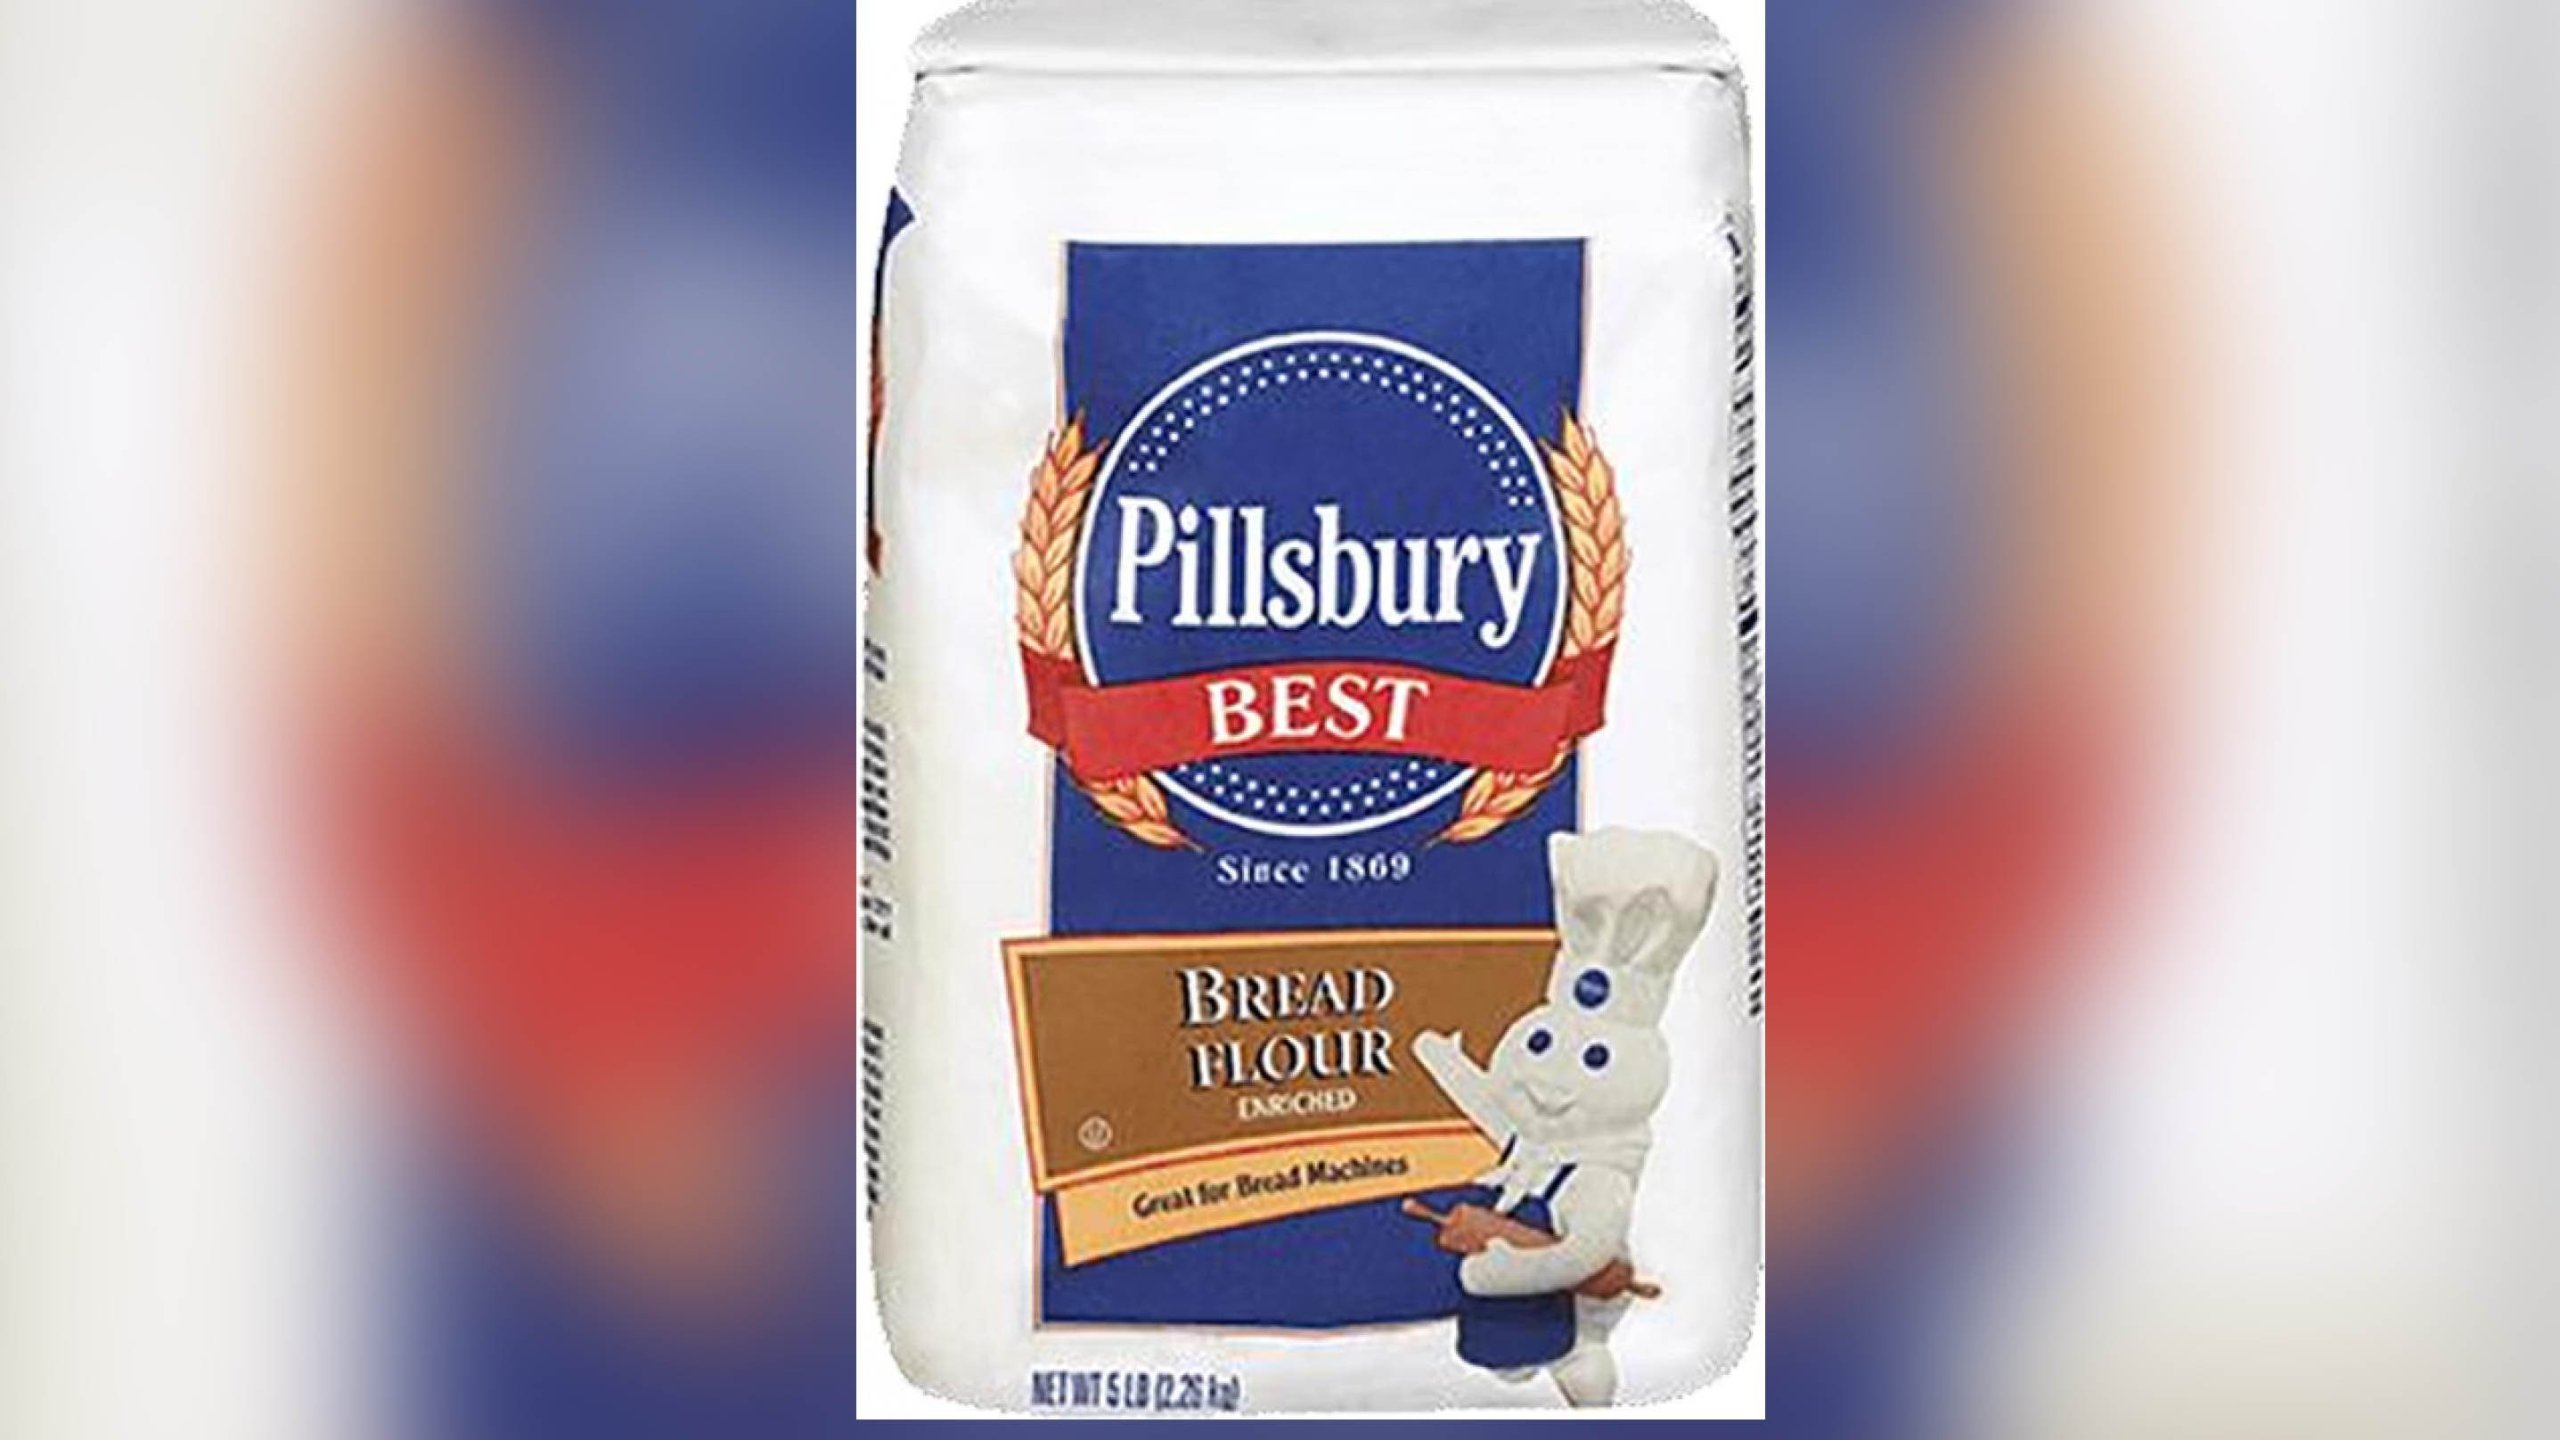 Pillsbury has recalled its 'Best Bread Flour' from stores because of possible E. coli contamination. (Credit: FDA)